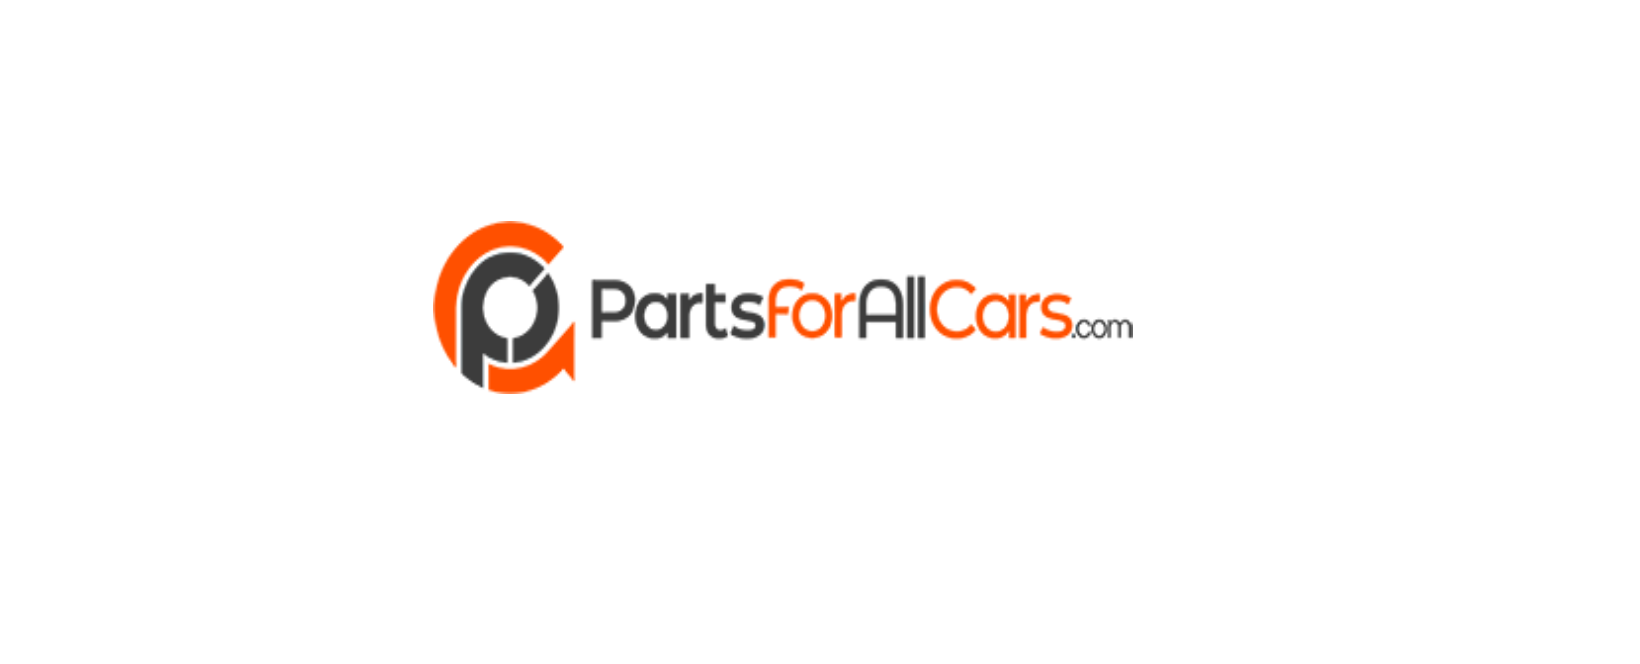 Parts For All Cars Discount Code 2021